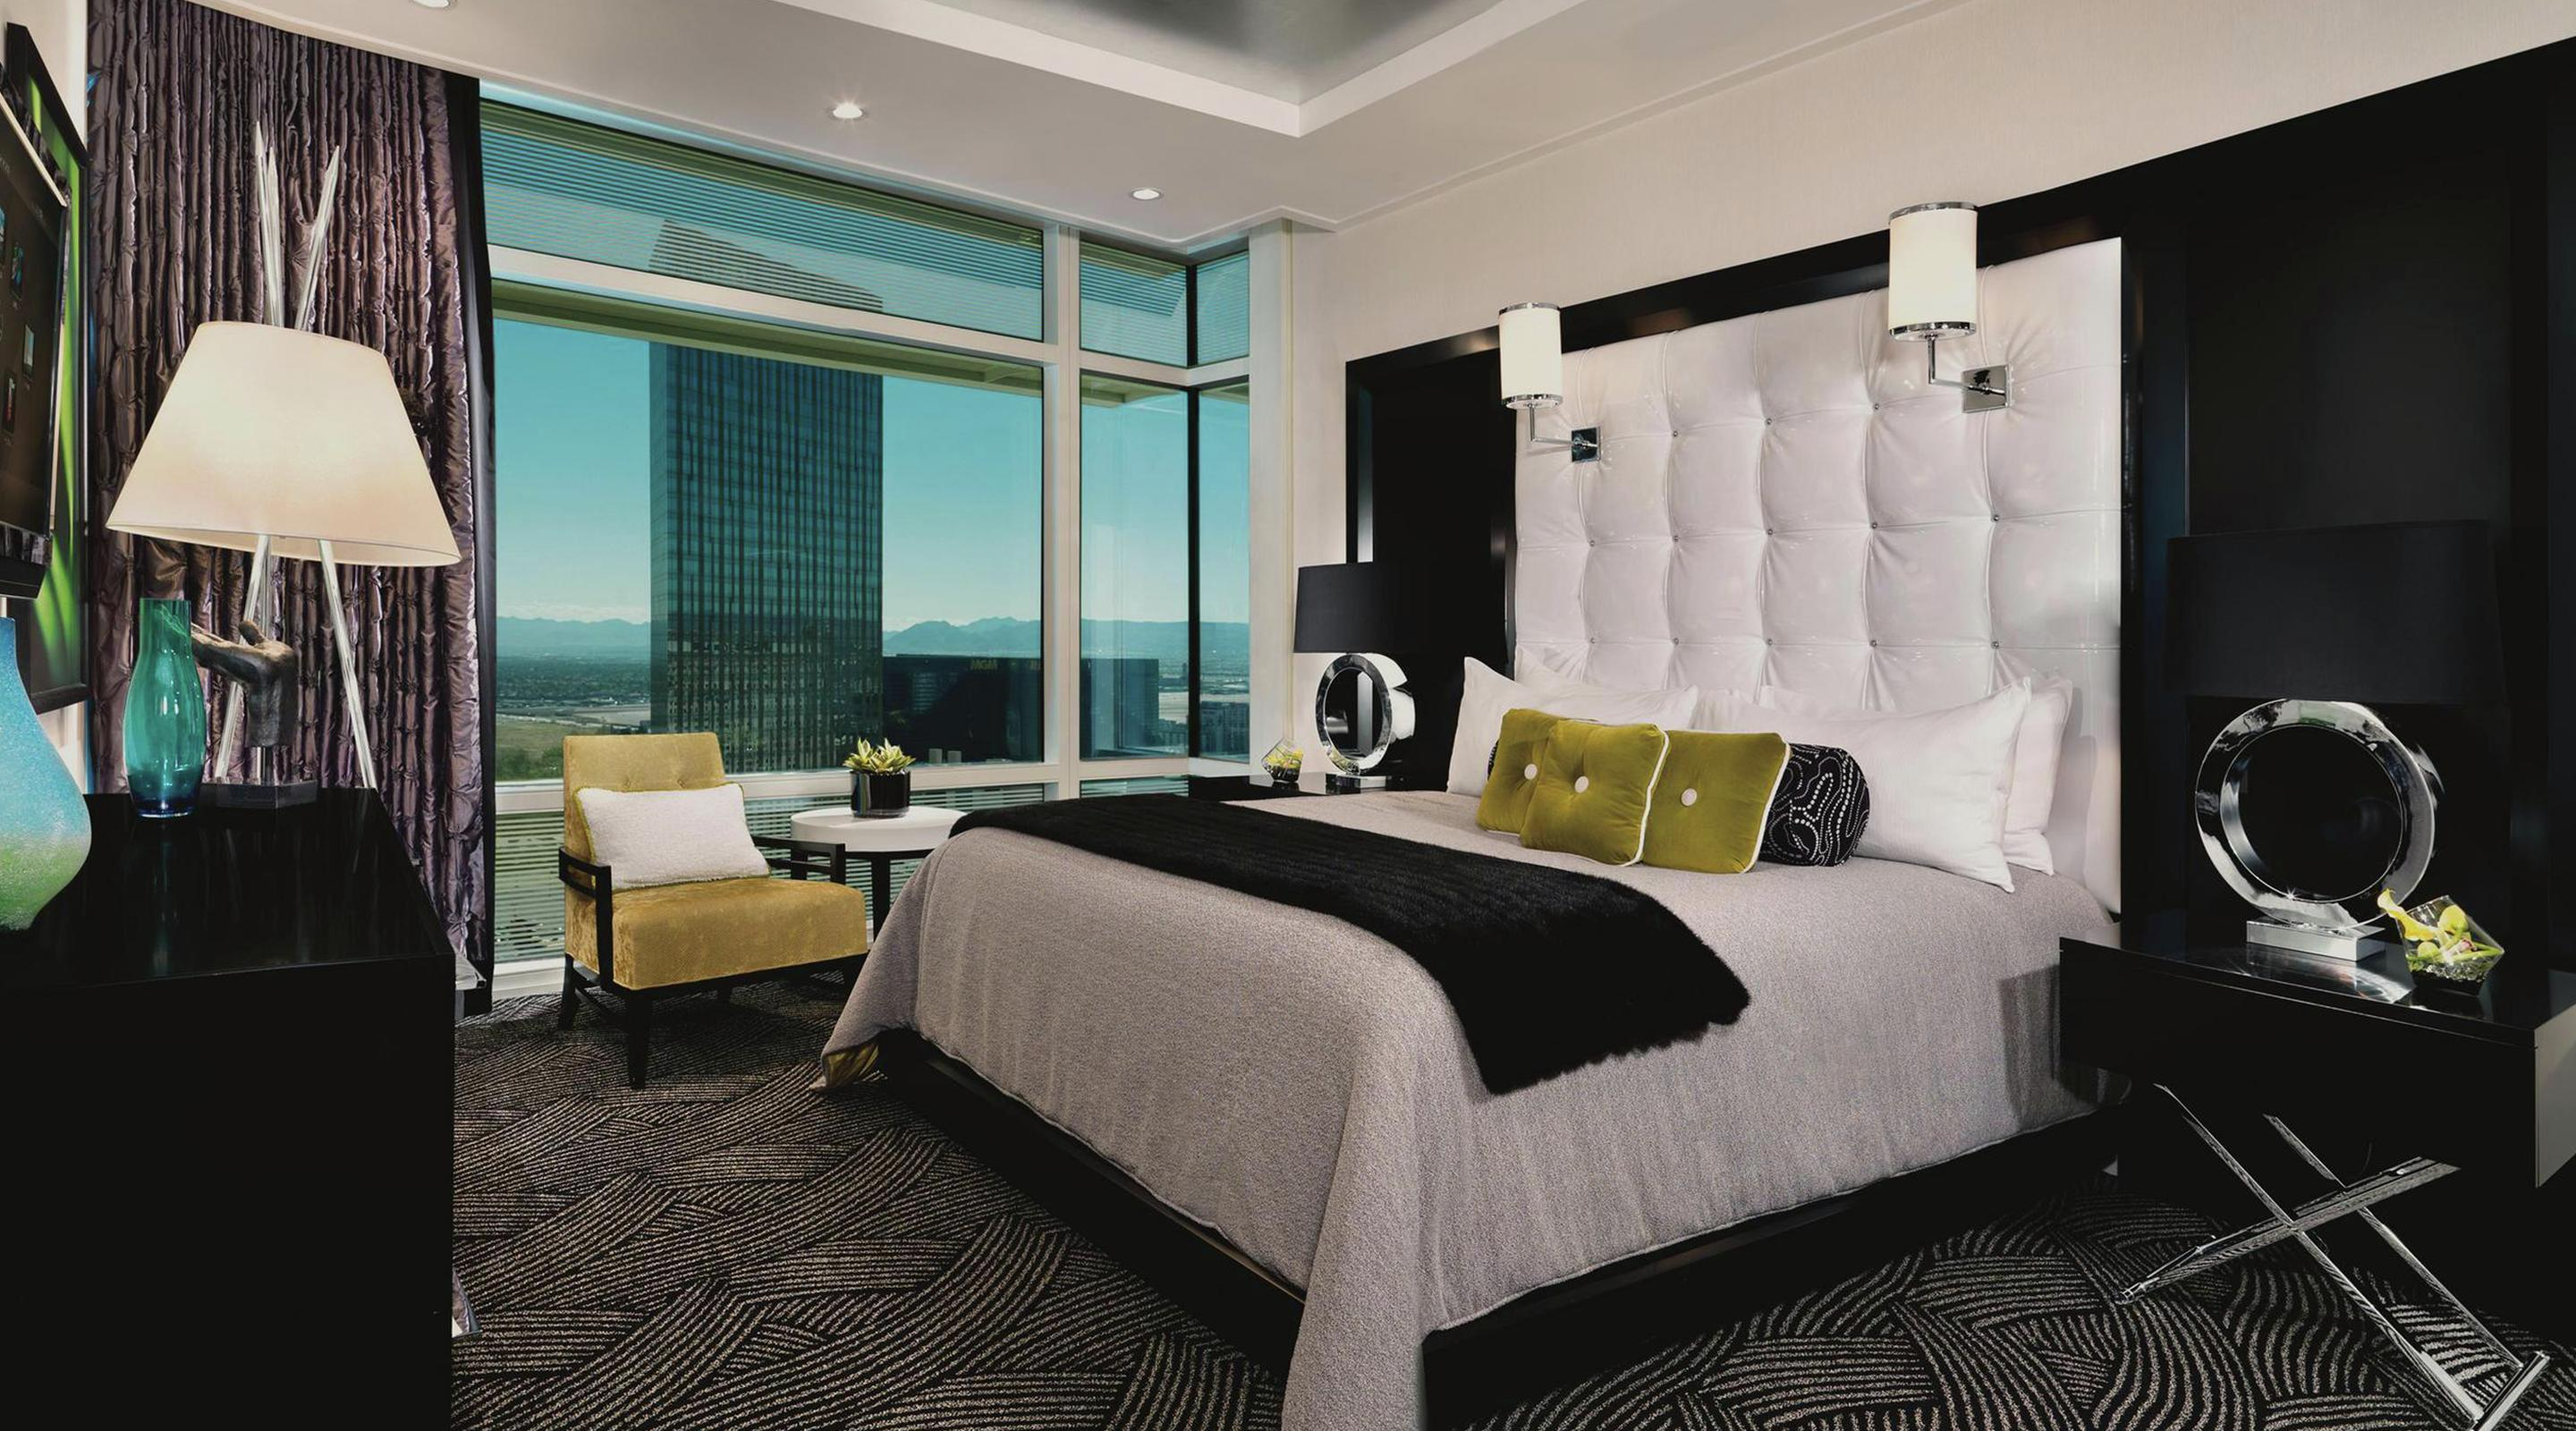 Las Vegas Hotels With 2 Bedroom Suites One Bedroom Penthouse Suite Aria Resort Casino